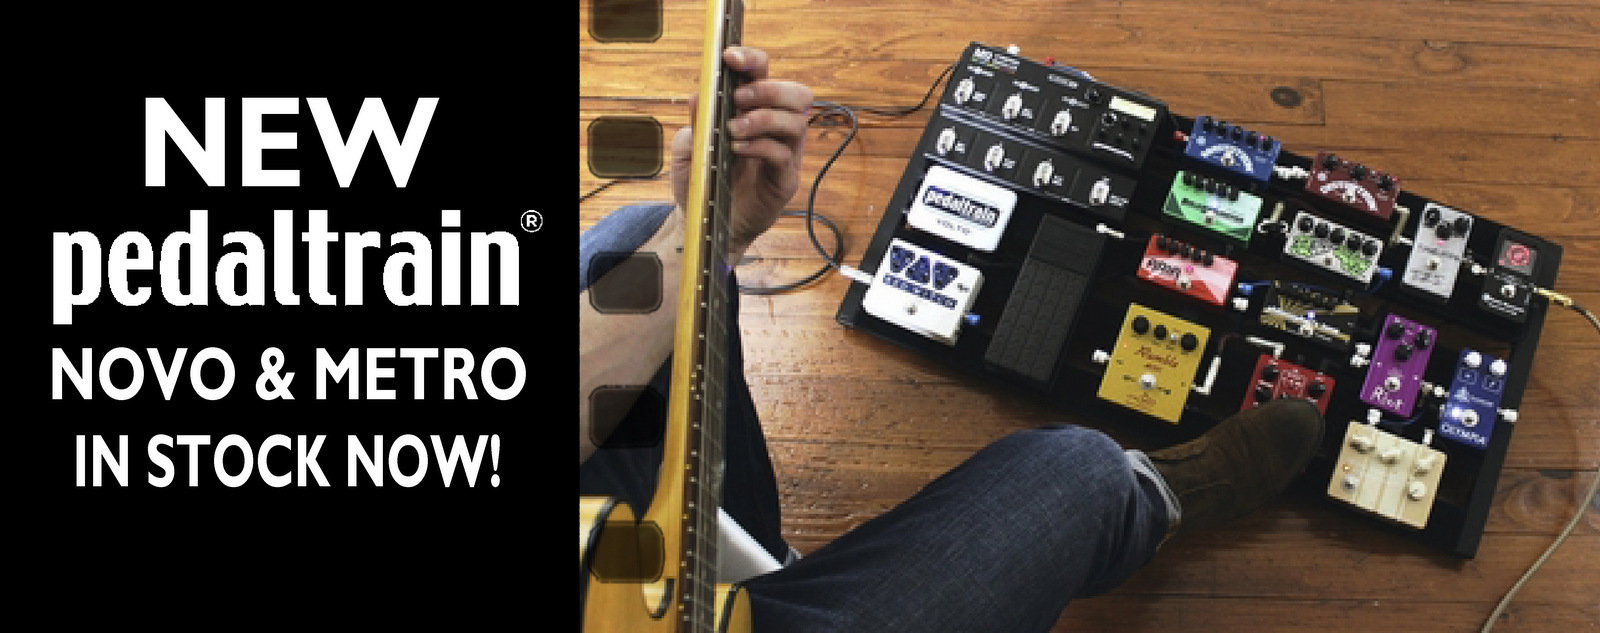 Check out the NEW Pedaltrain models!